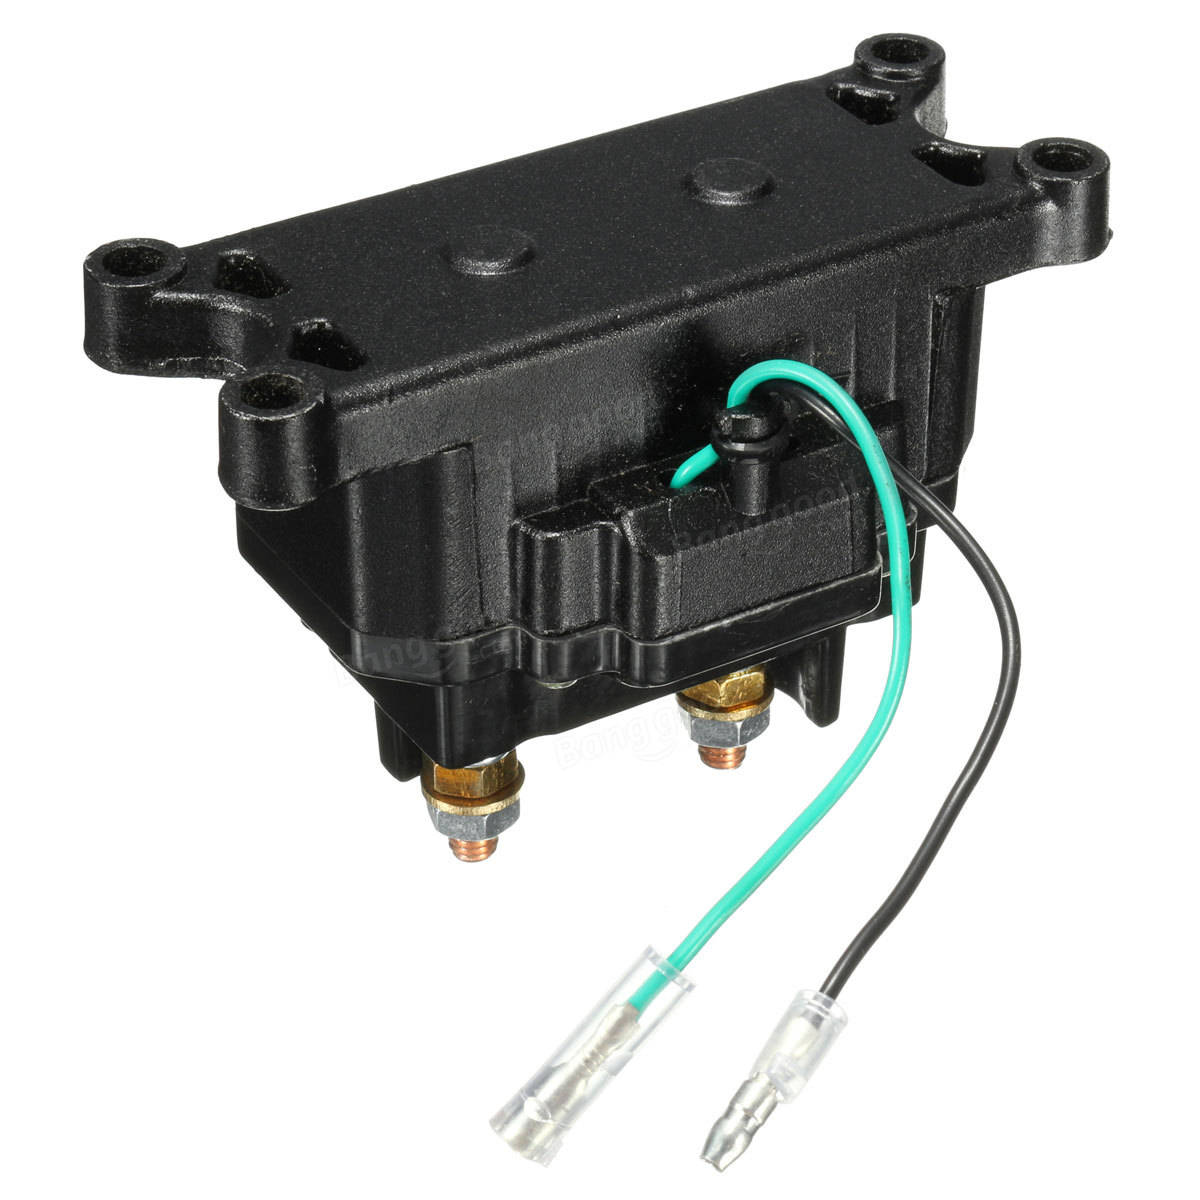 12v winch motor wiring diagram shunt signal solenoid relay contactor rocker thumb switch for